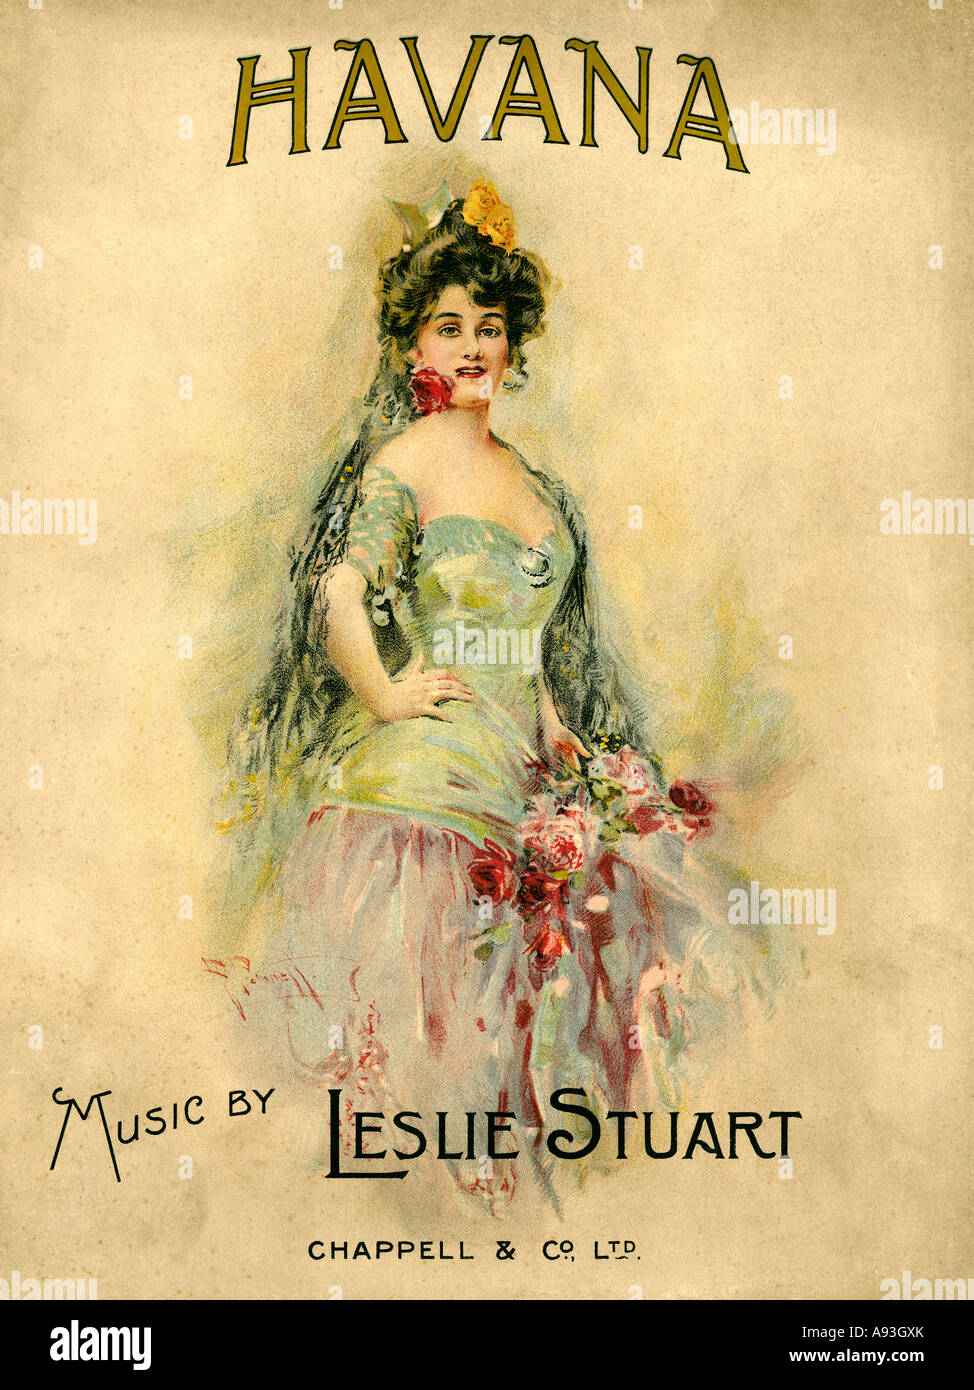 Havana 1908 the cover of the score by Leslie Stuart for the musical play by George Grossmith staged in London - Stock Image